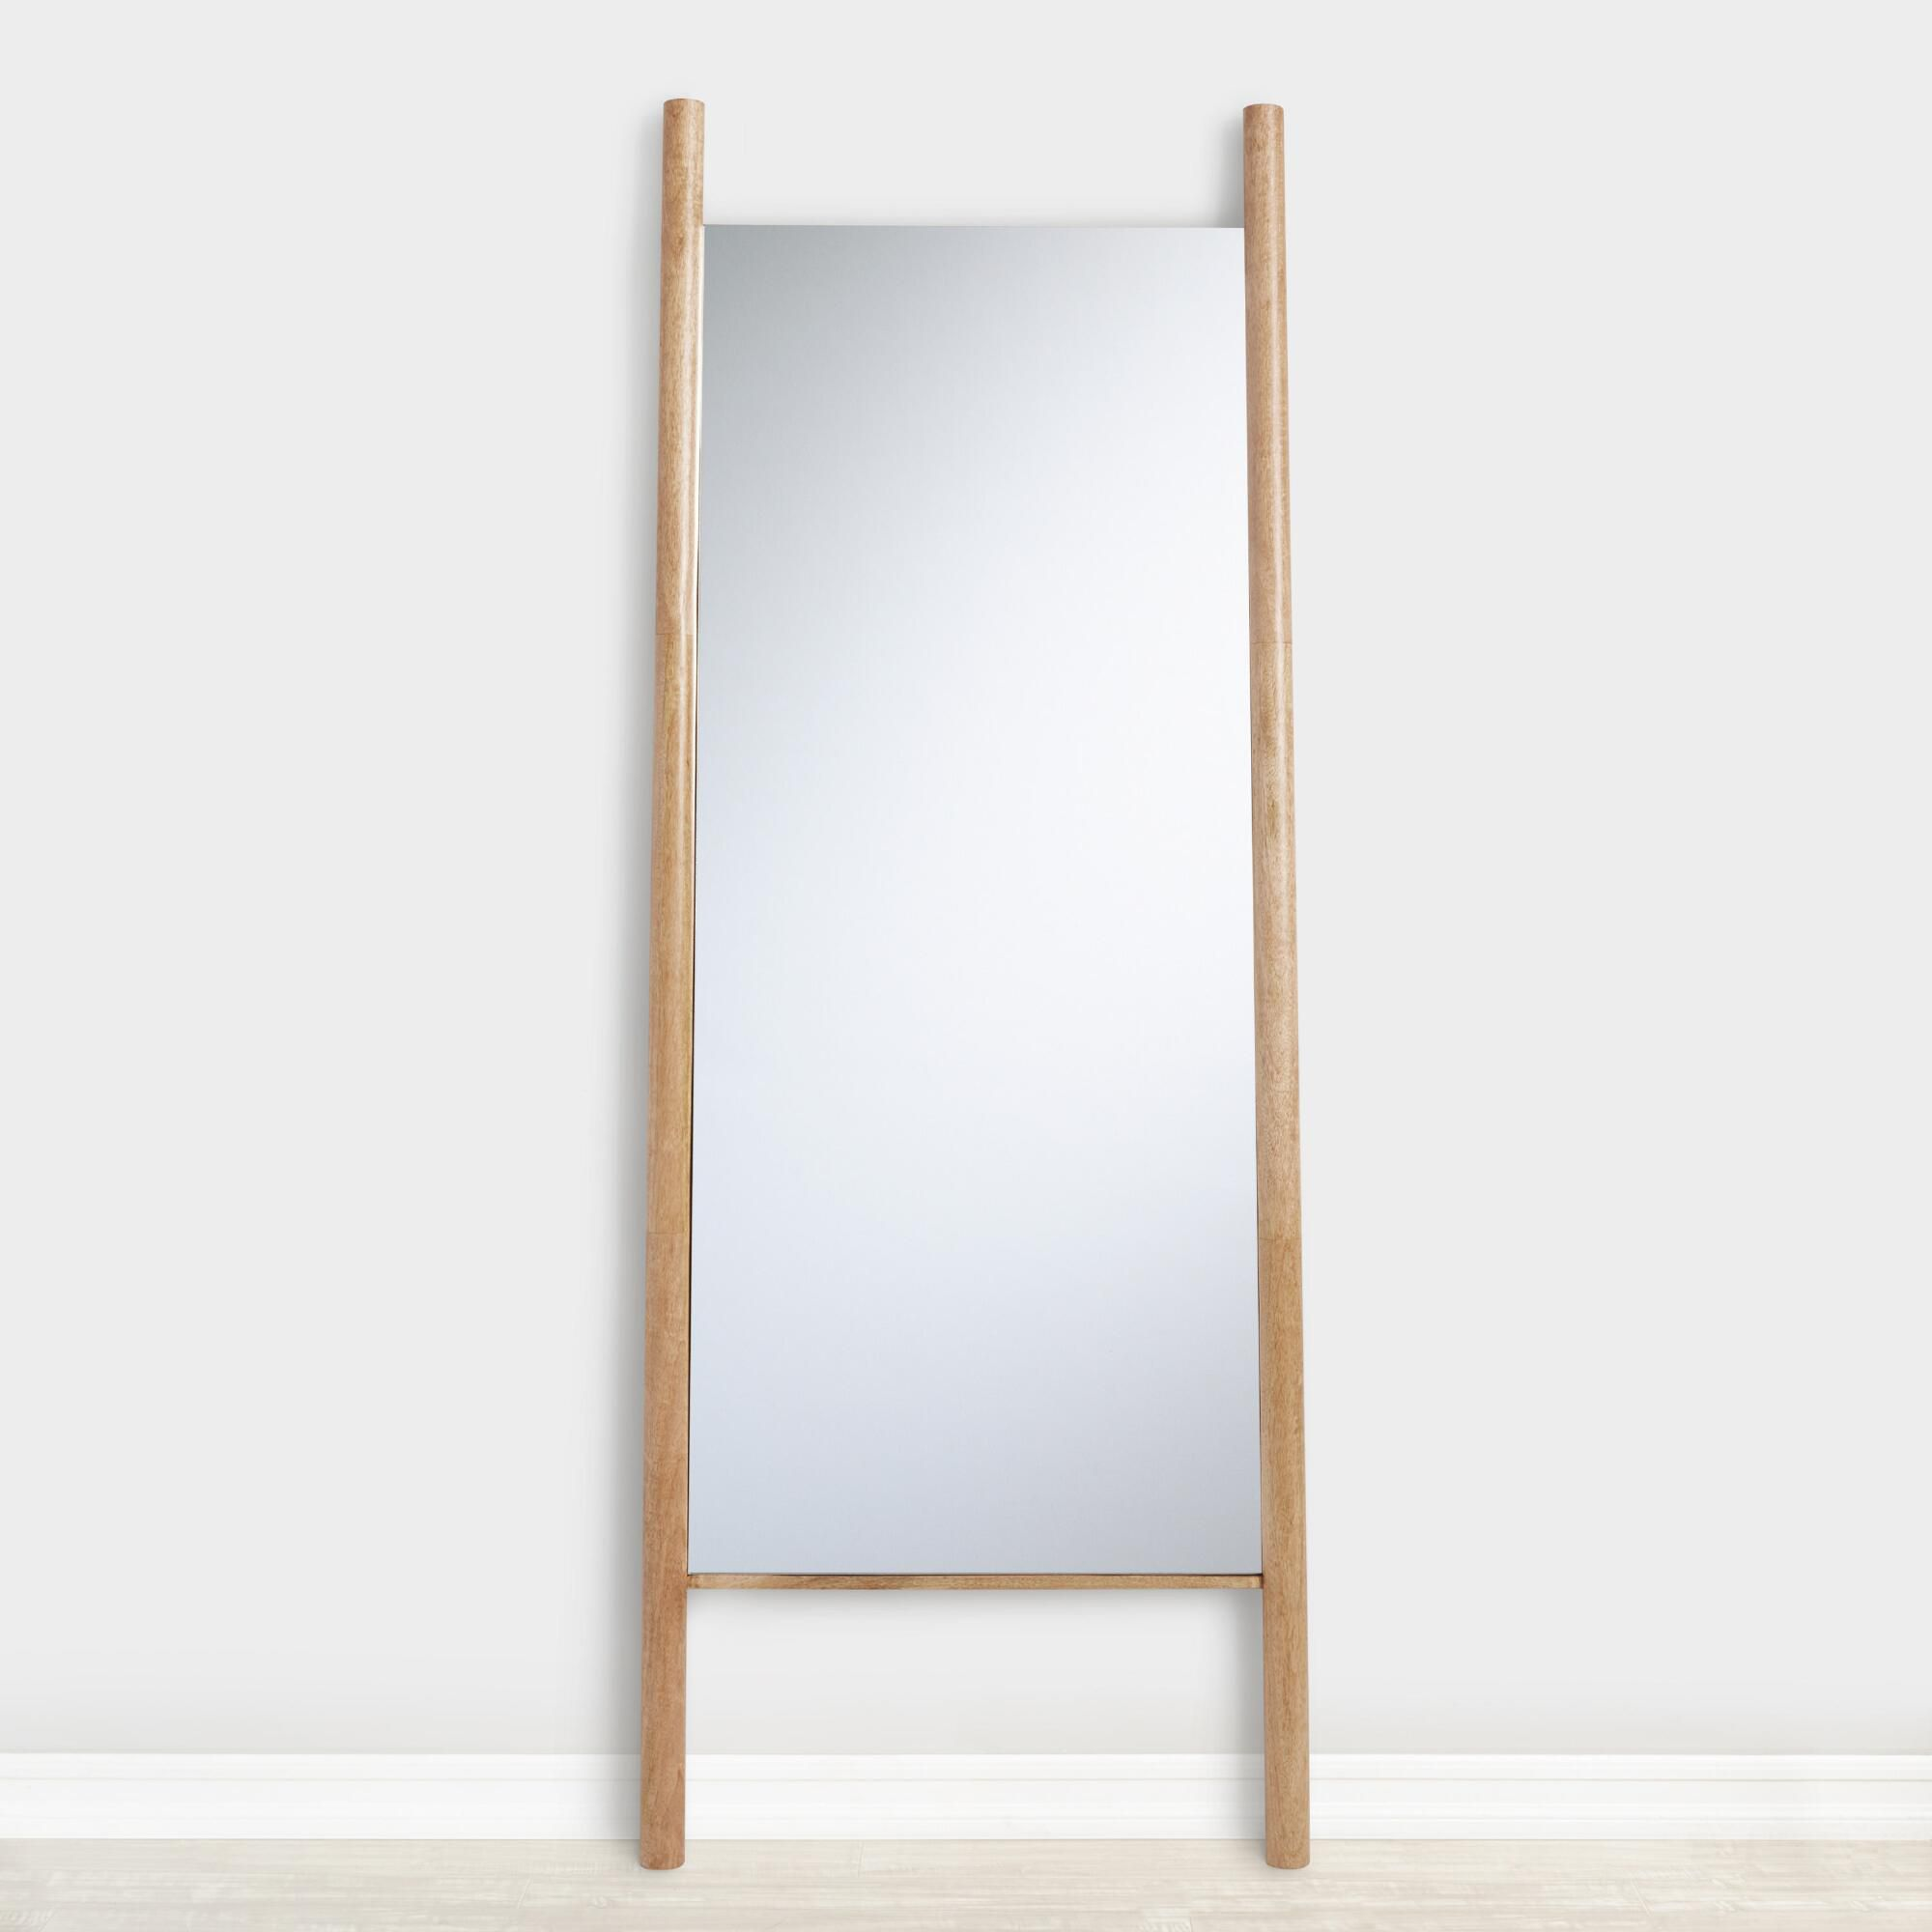 World Market Natural Wood Ladder Leaning Full Length Arya Mirror leaning on the wall